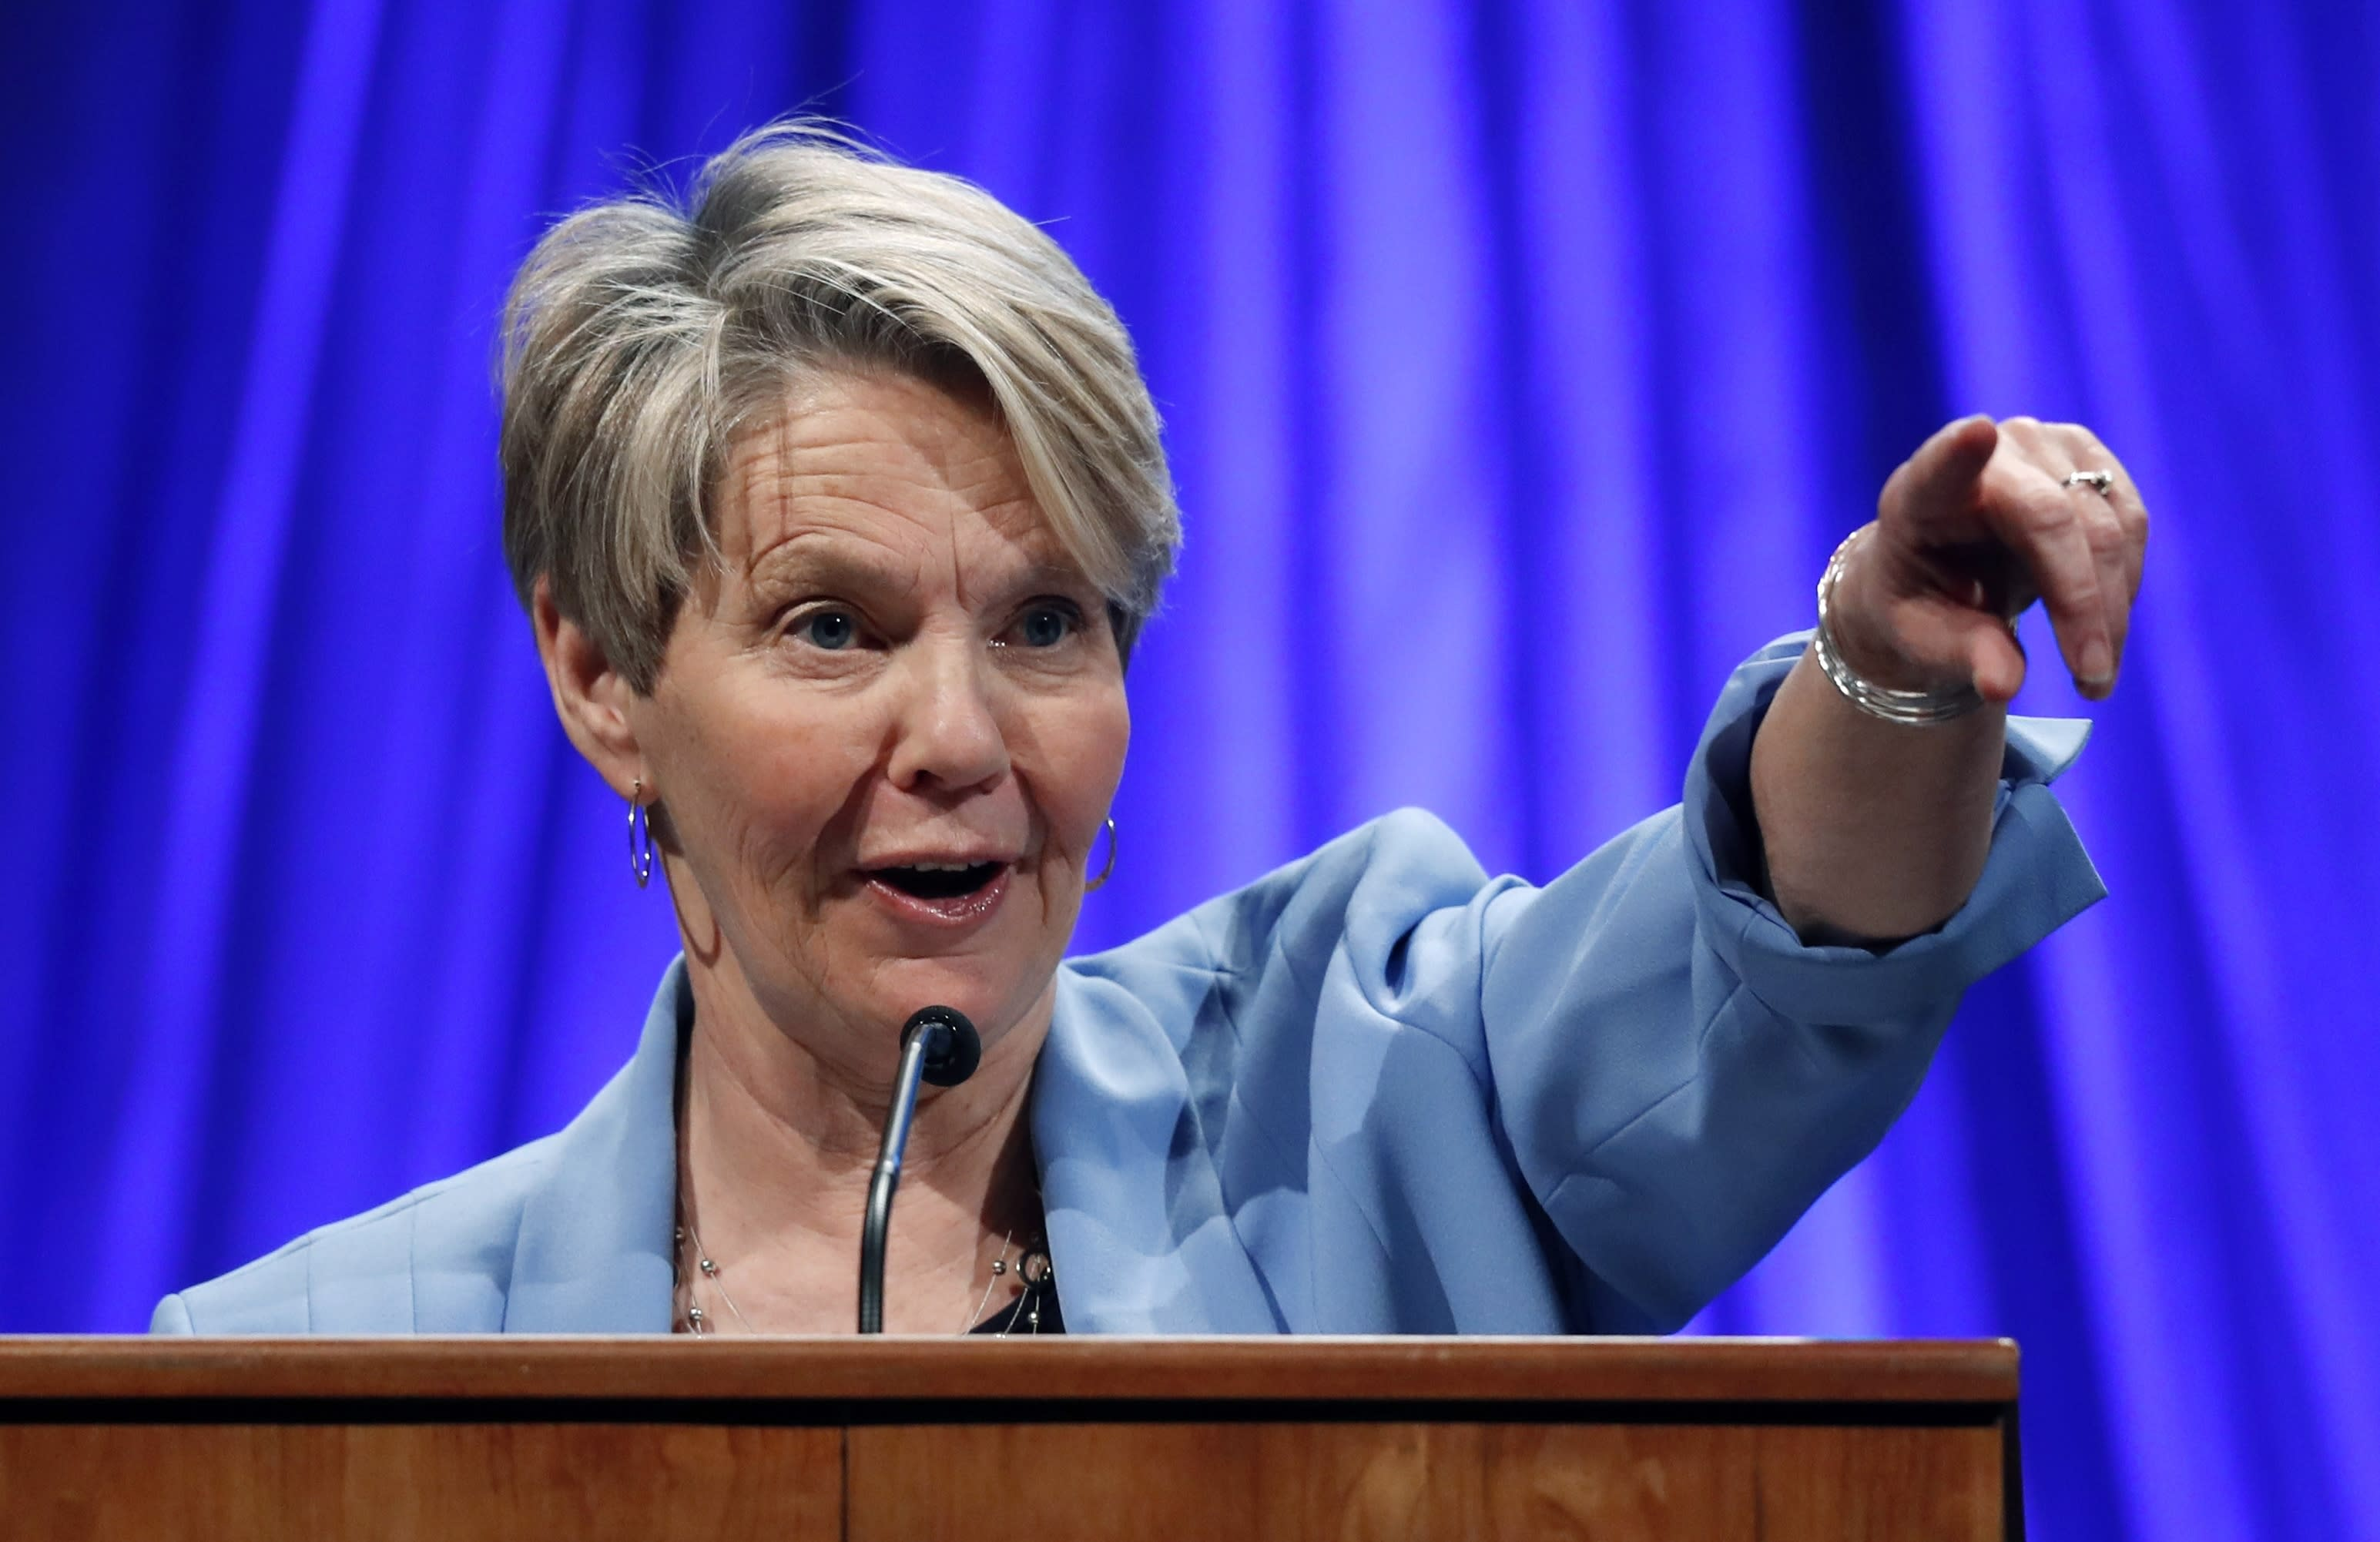 FILE - In this May 19, 2018 file photo, gubernatorial candidate Betsy Sweet speaks at the Democratic convention in Lewiston, Maine. Sweet is one of three Democrat candidates seeking the party's nomination for U.S. Senate in the July 14, 2020, primary. (AP Photo/Robert F. Bukaty, File)